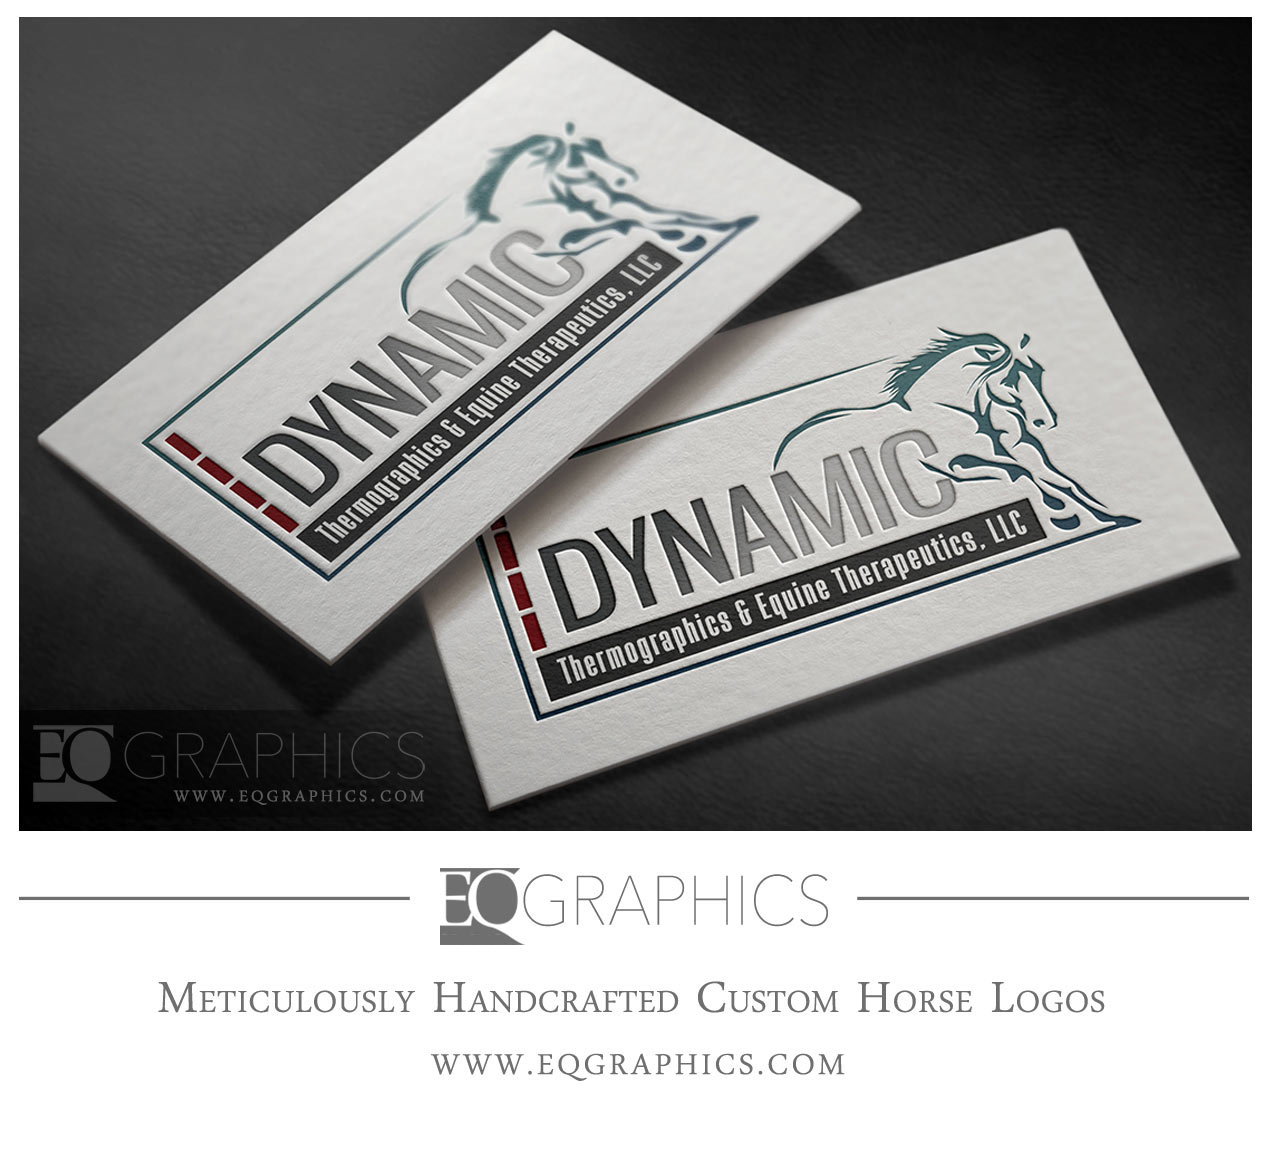 Dynamic Equine Therapeutics Logo Veterinary Rehab Design by EQ Graphics